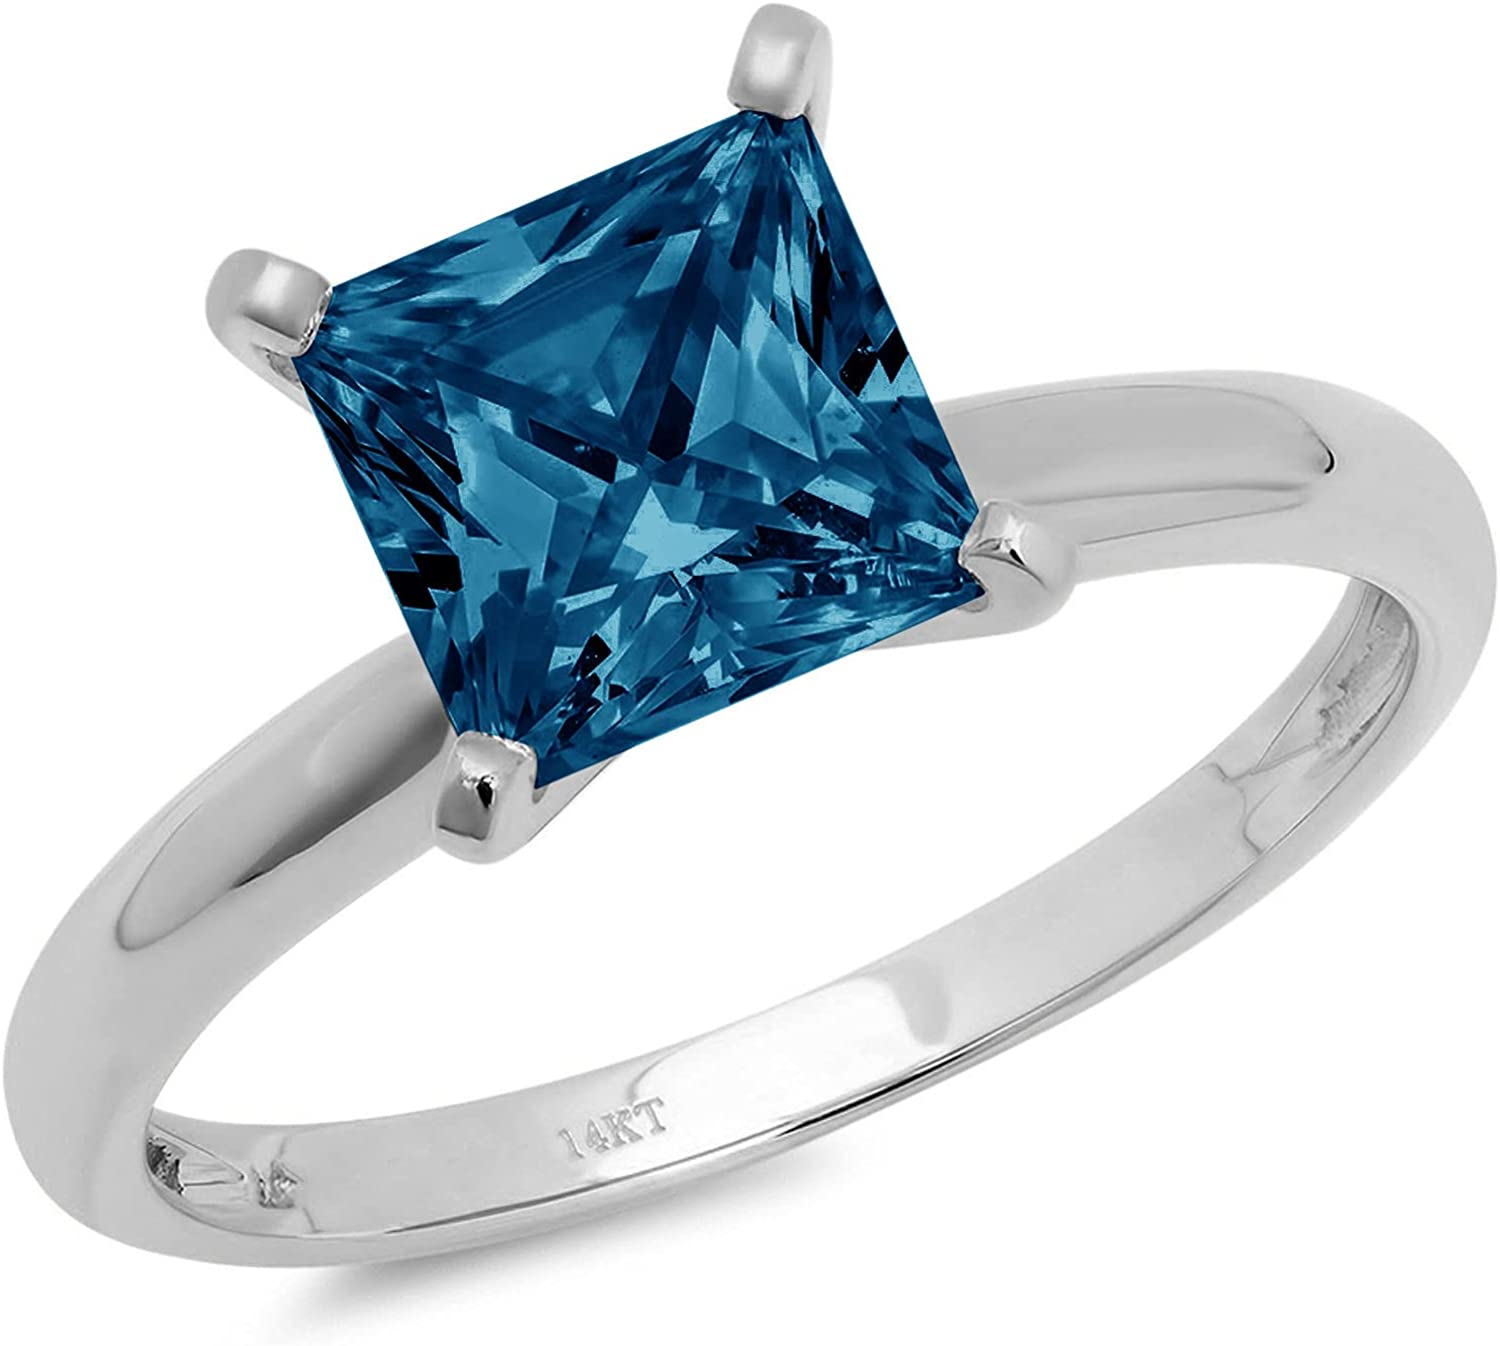 1.4ct Brilliant Princess Cut Solitaire Natural Royal Blue Ideal VVS1 4-Prong Engagement Wedding Bridal Promise Anniversary Ring Solid 14k White Gold for Women